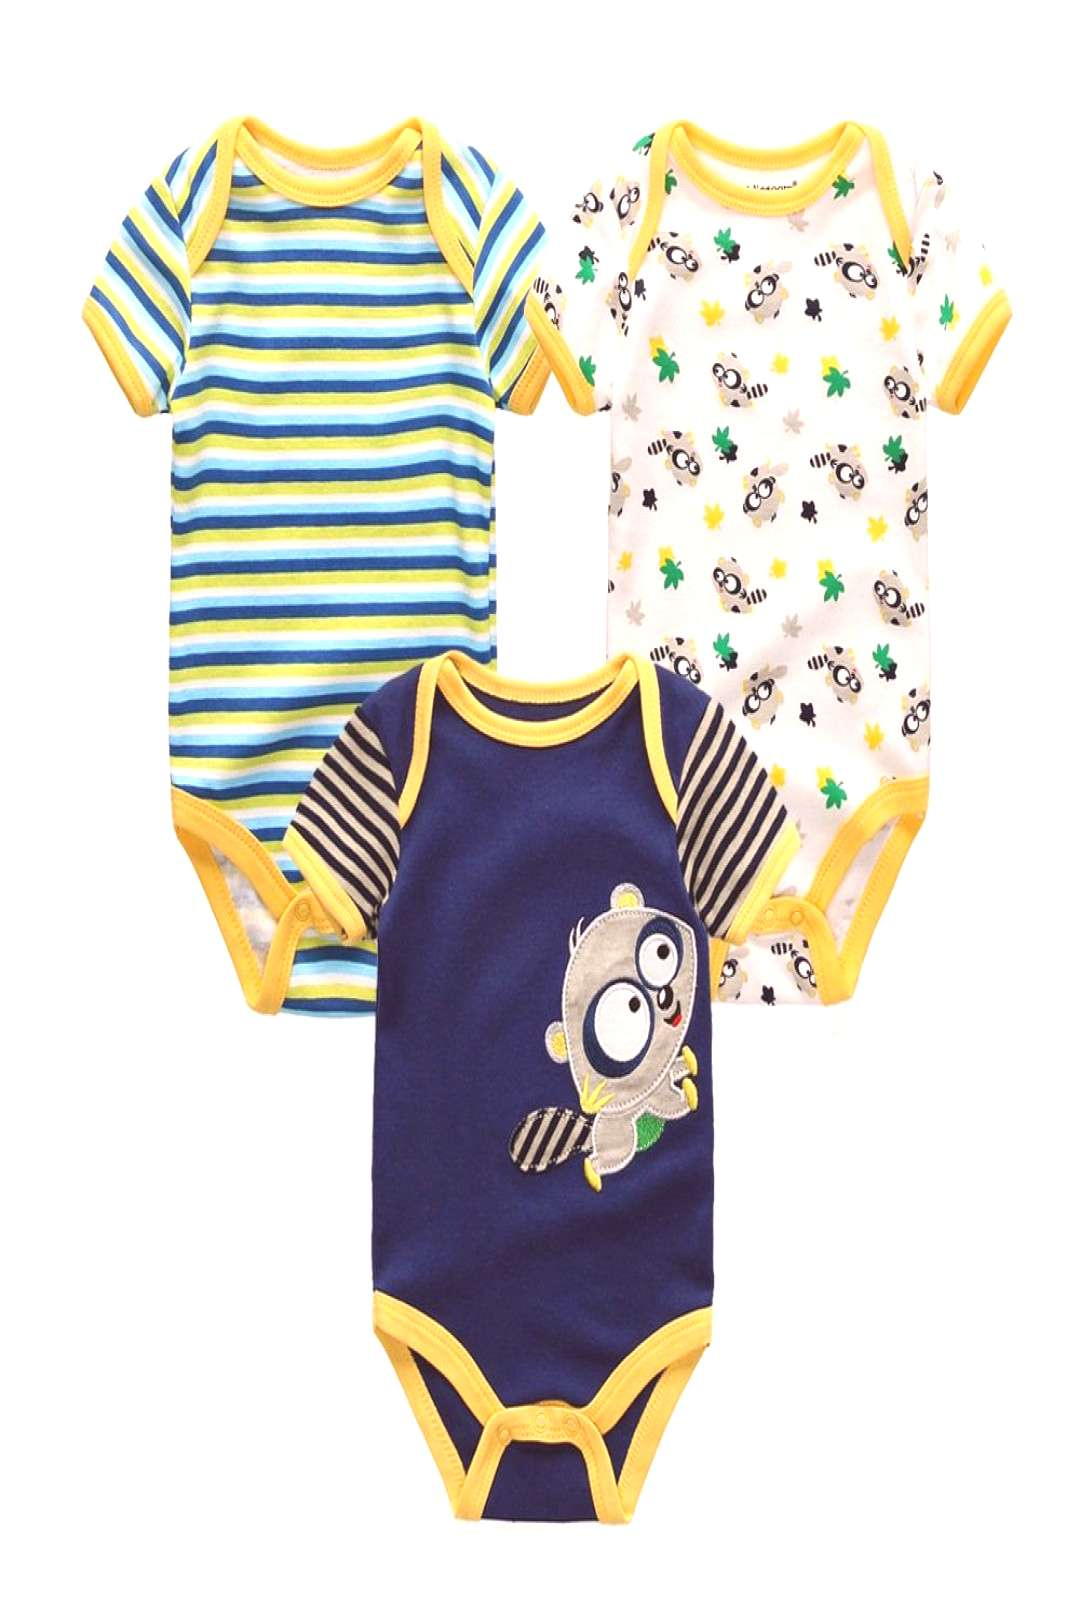 3PCS Newborn Baby Rompers Unisex Infant Clothes Cotton Short Sleeves Baby Boy Girl Clothing Cute Ca